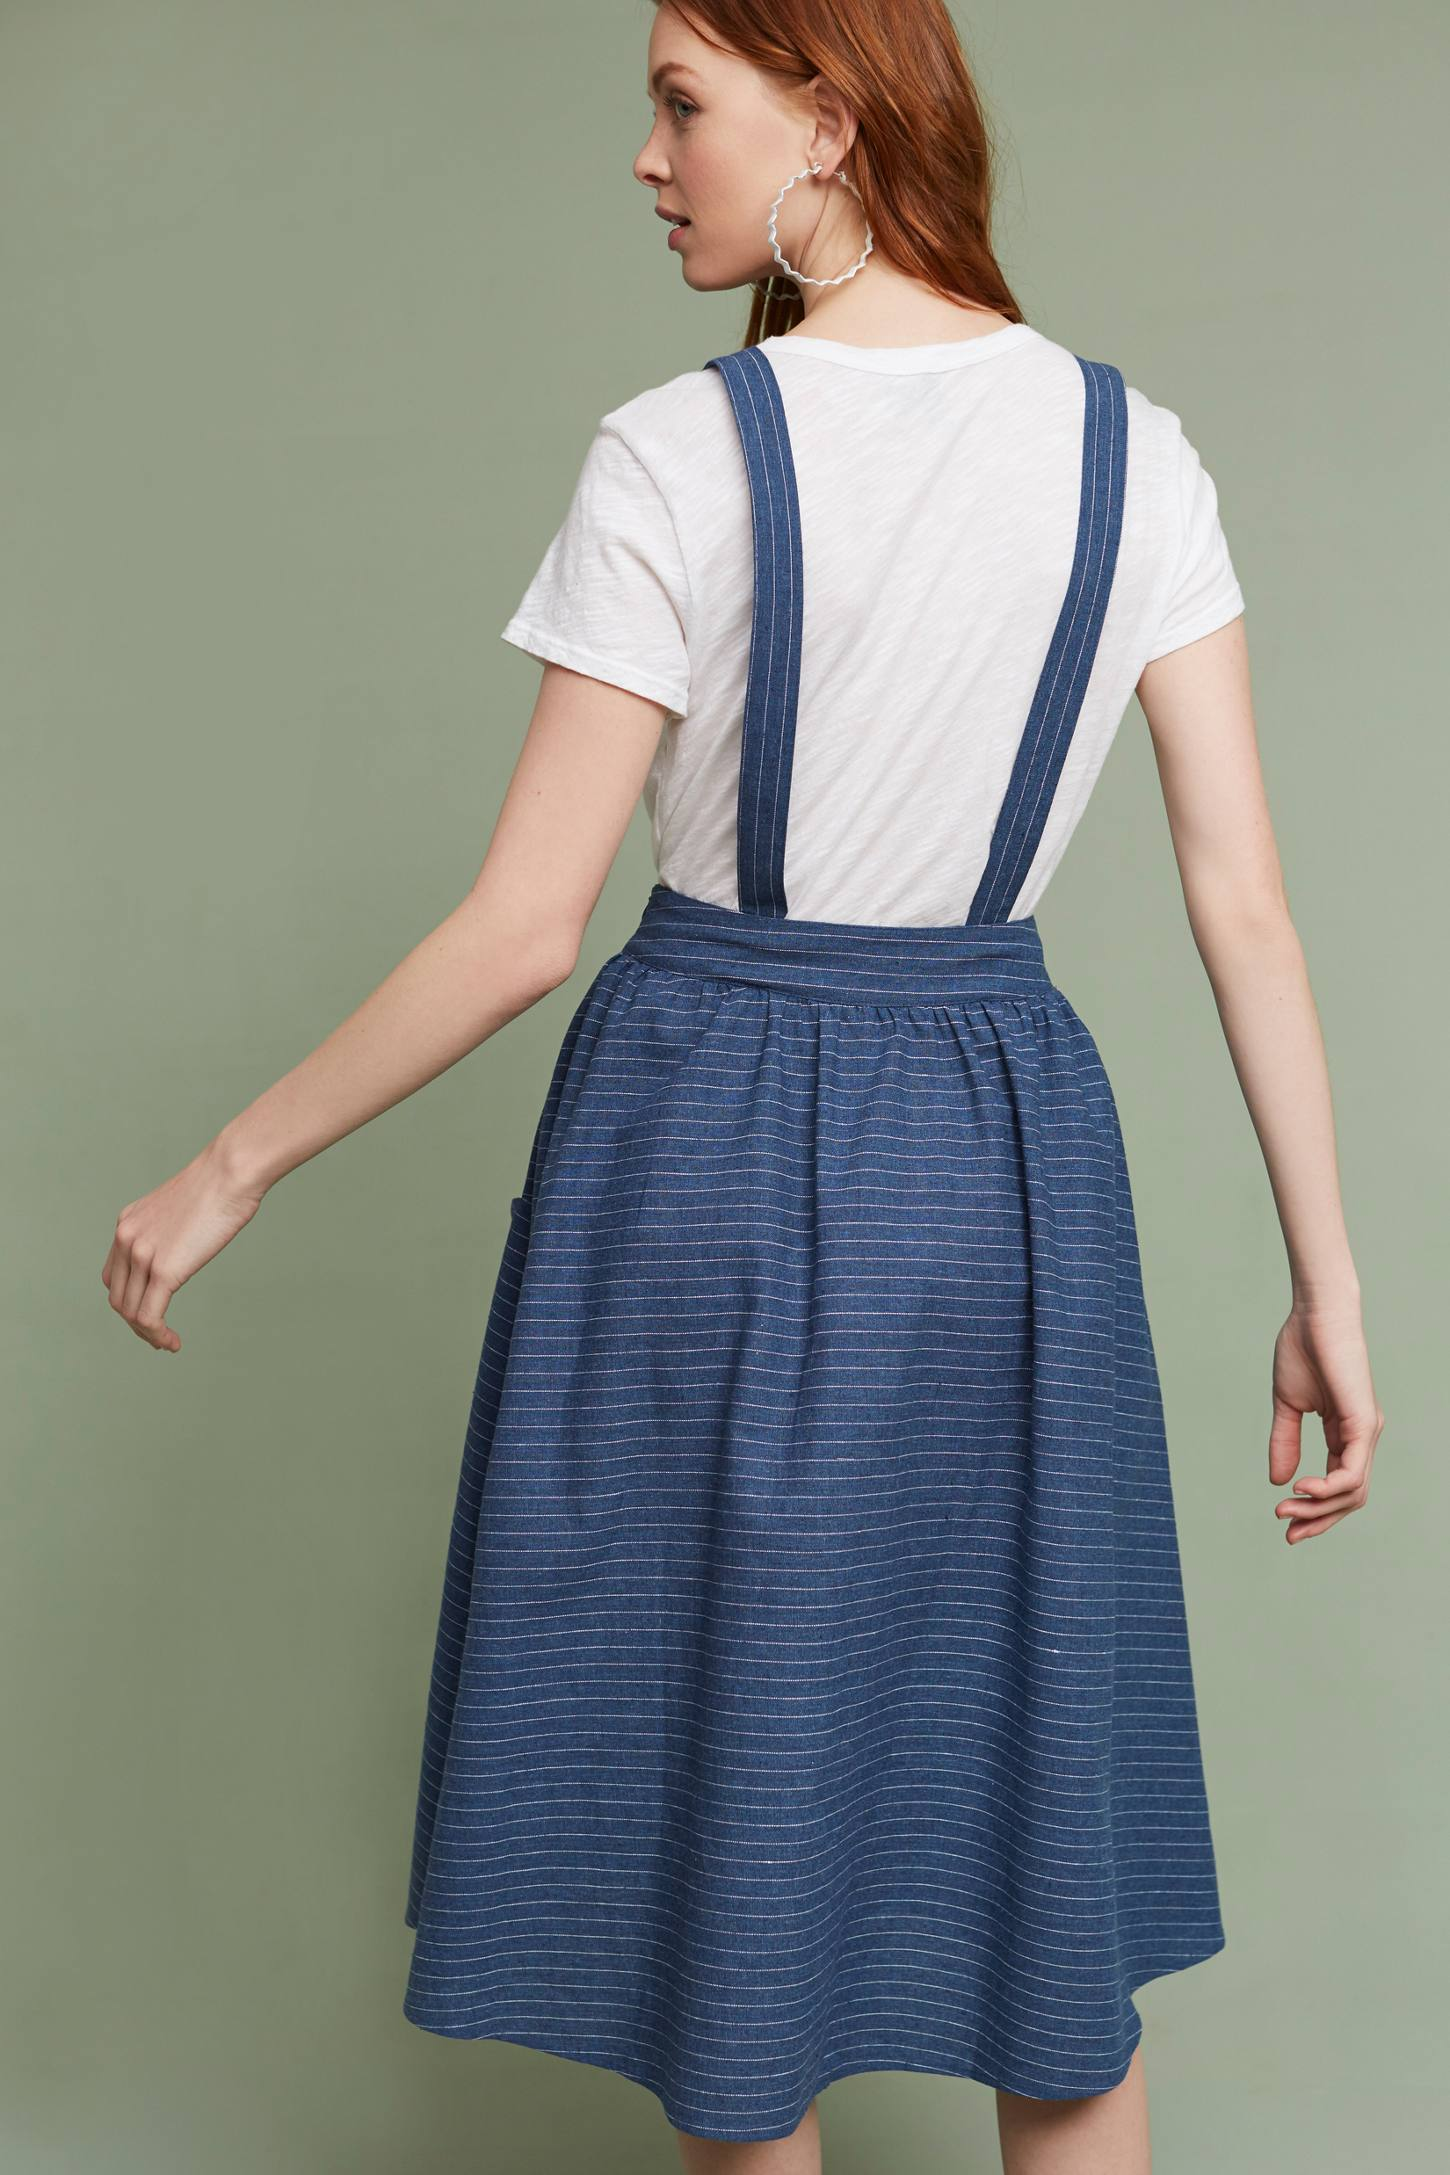 Slide View: 4: Regina Suspender Skirt, Blue